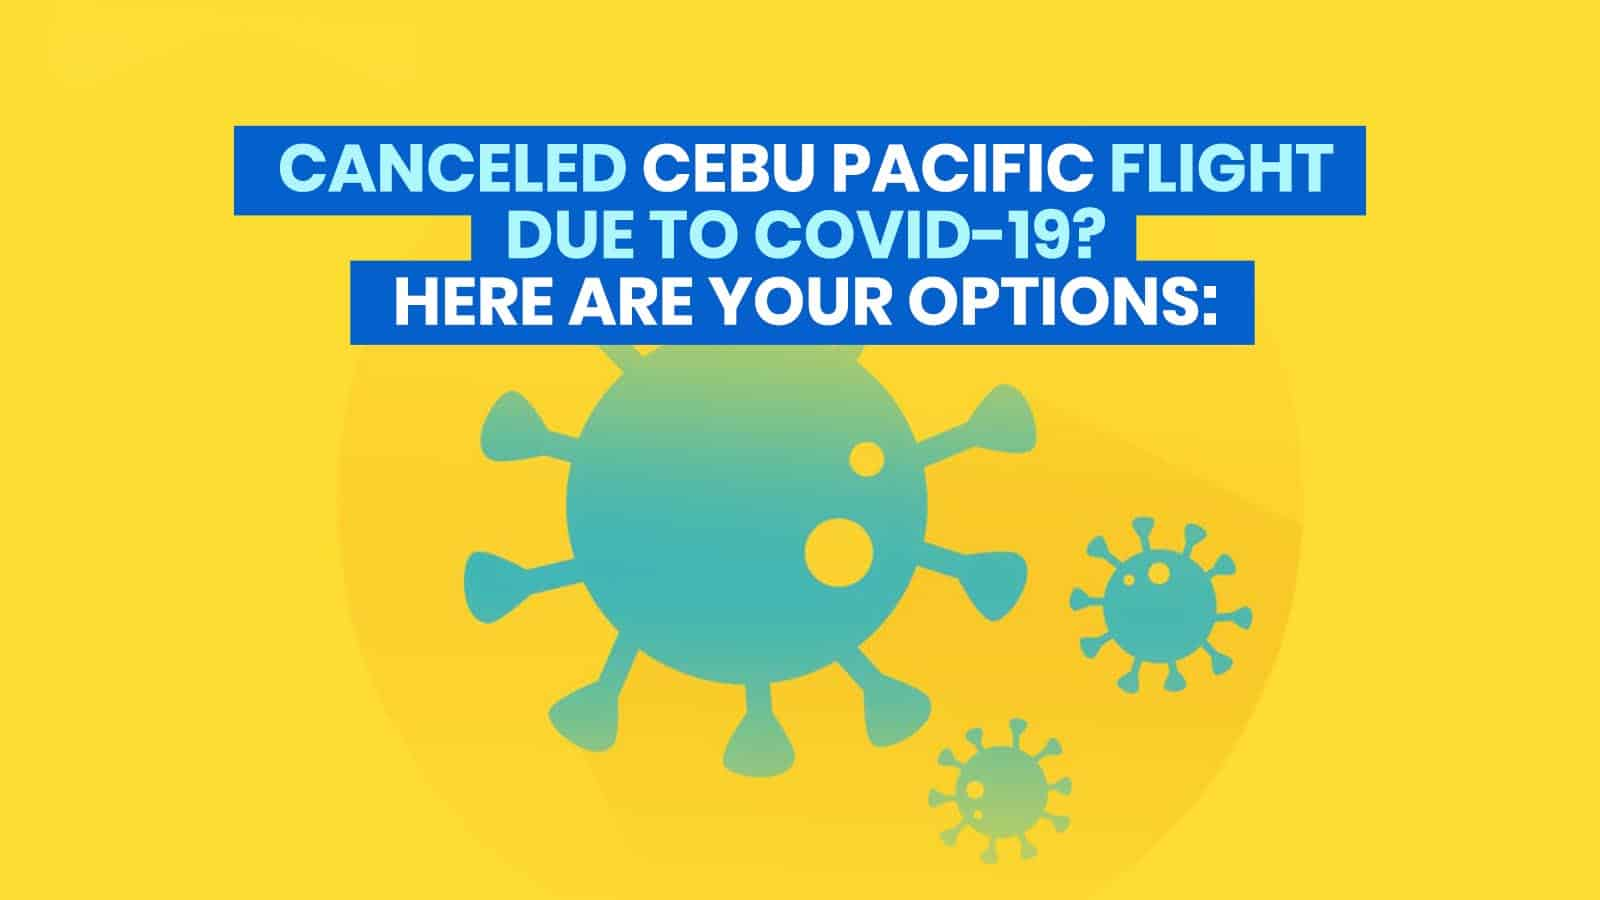 Canceled CEBU PACIFIC FLIGHT Due to Covid-19? Here's How to Rebook, Refund or Convert to Travel Fund